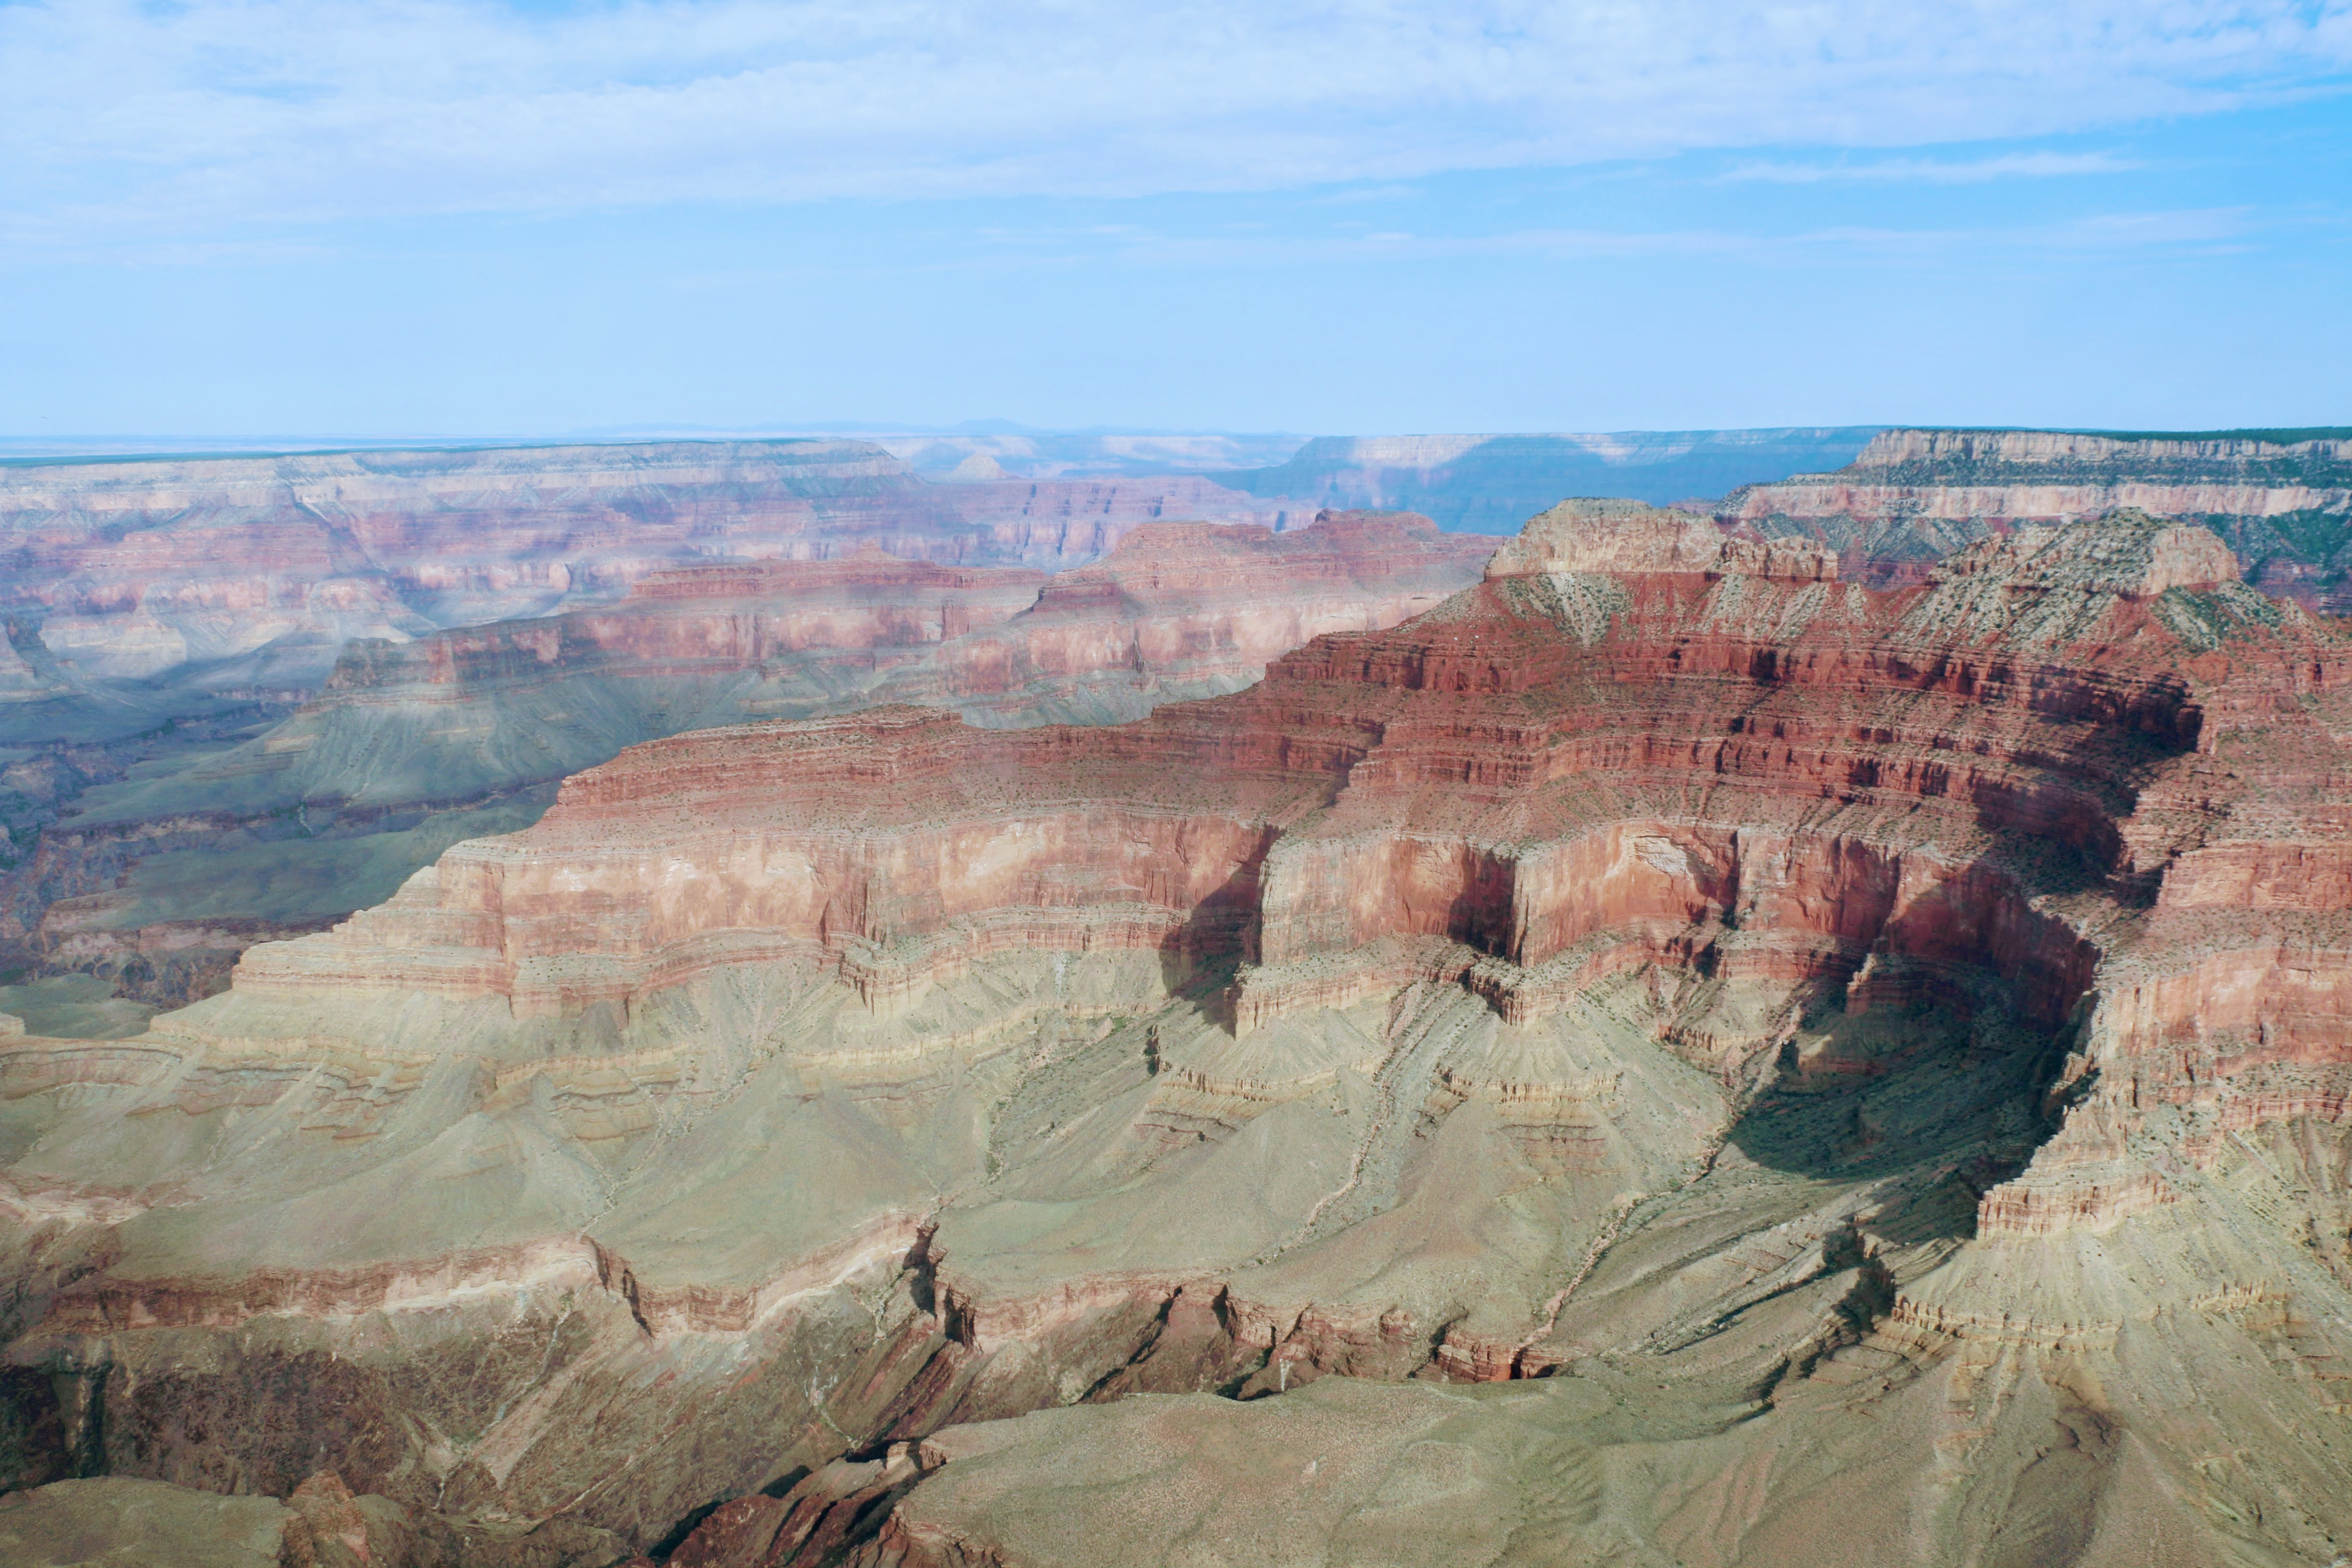 Over de Grand Canyon vliegen met helikopter